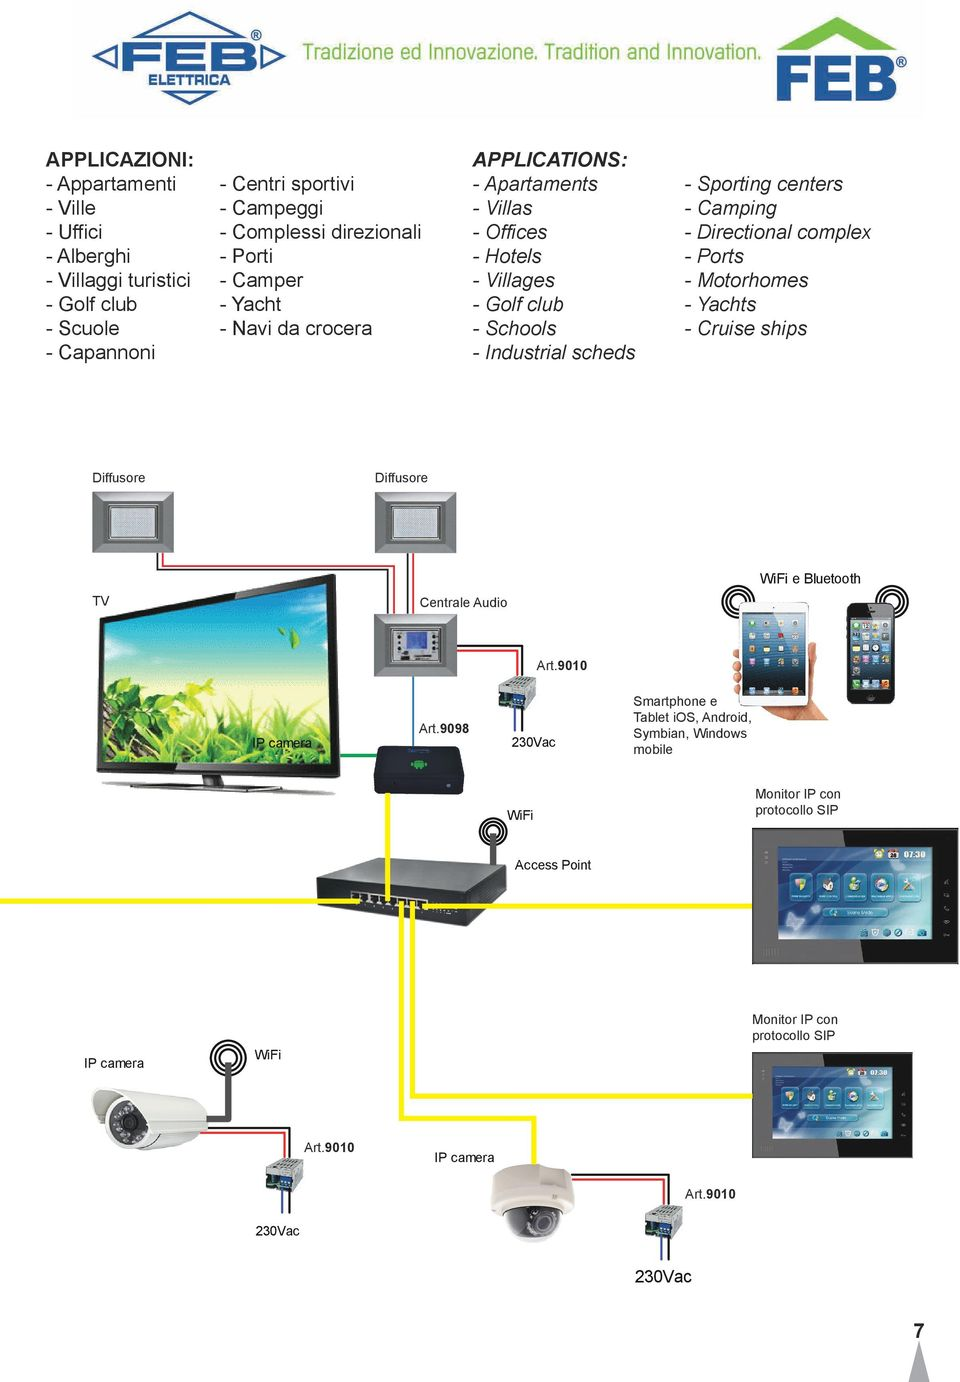 Camping - Directional complex - Ports - Motorhomes - Yachts - Cruise ships Diffusore Diffusore TV Centrale Audio WiFi e Bluetooth Art.9010 IP camera Art.